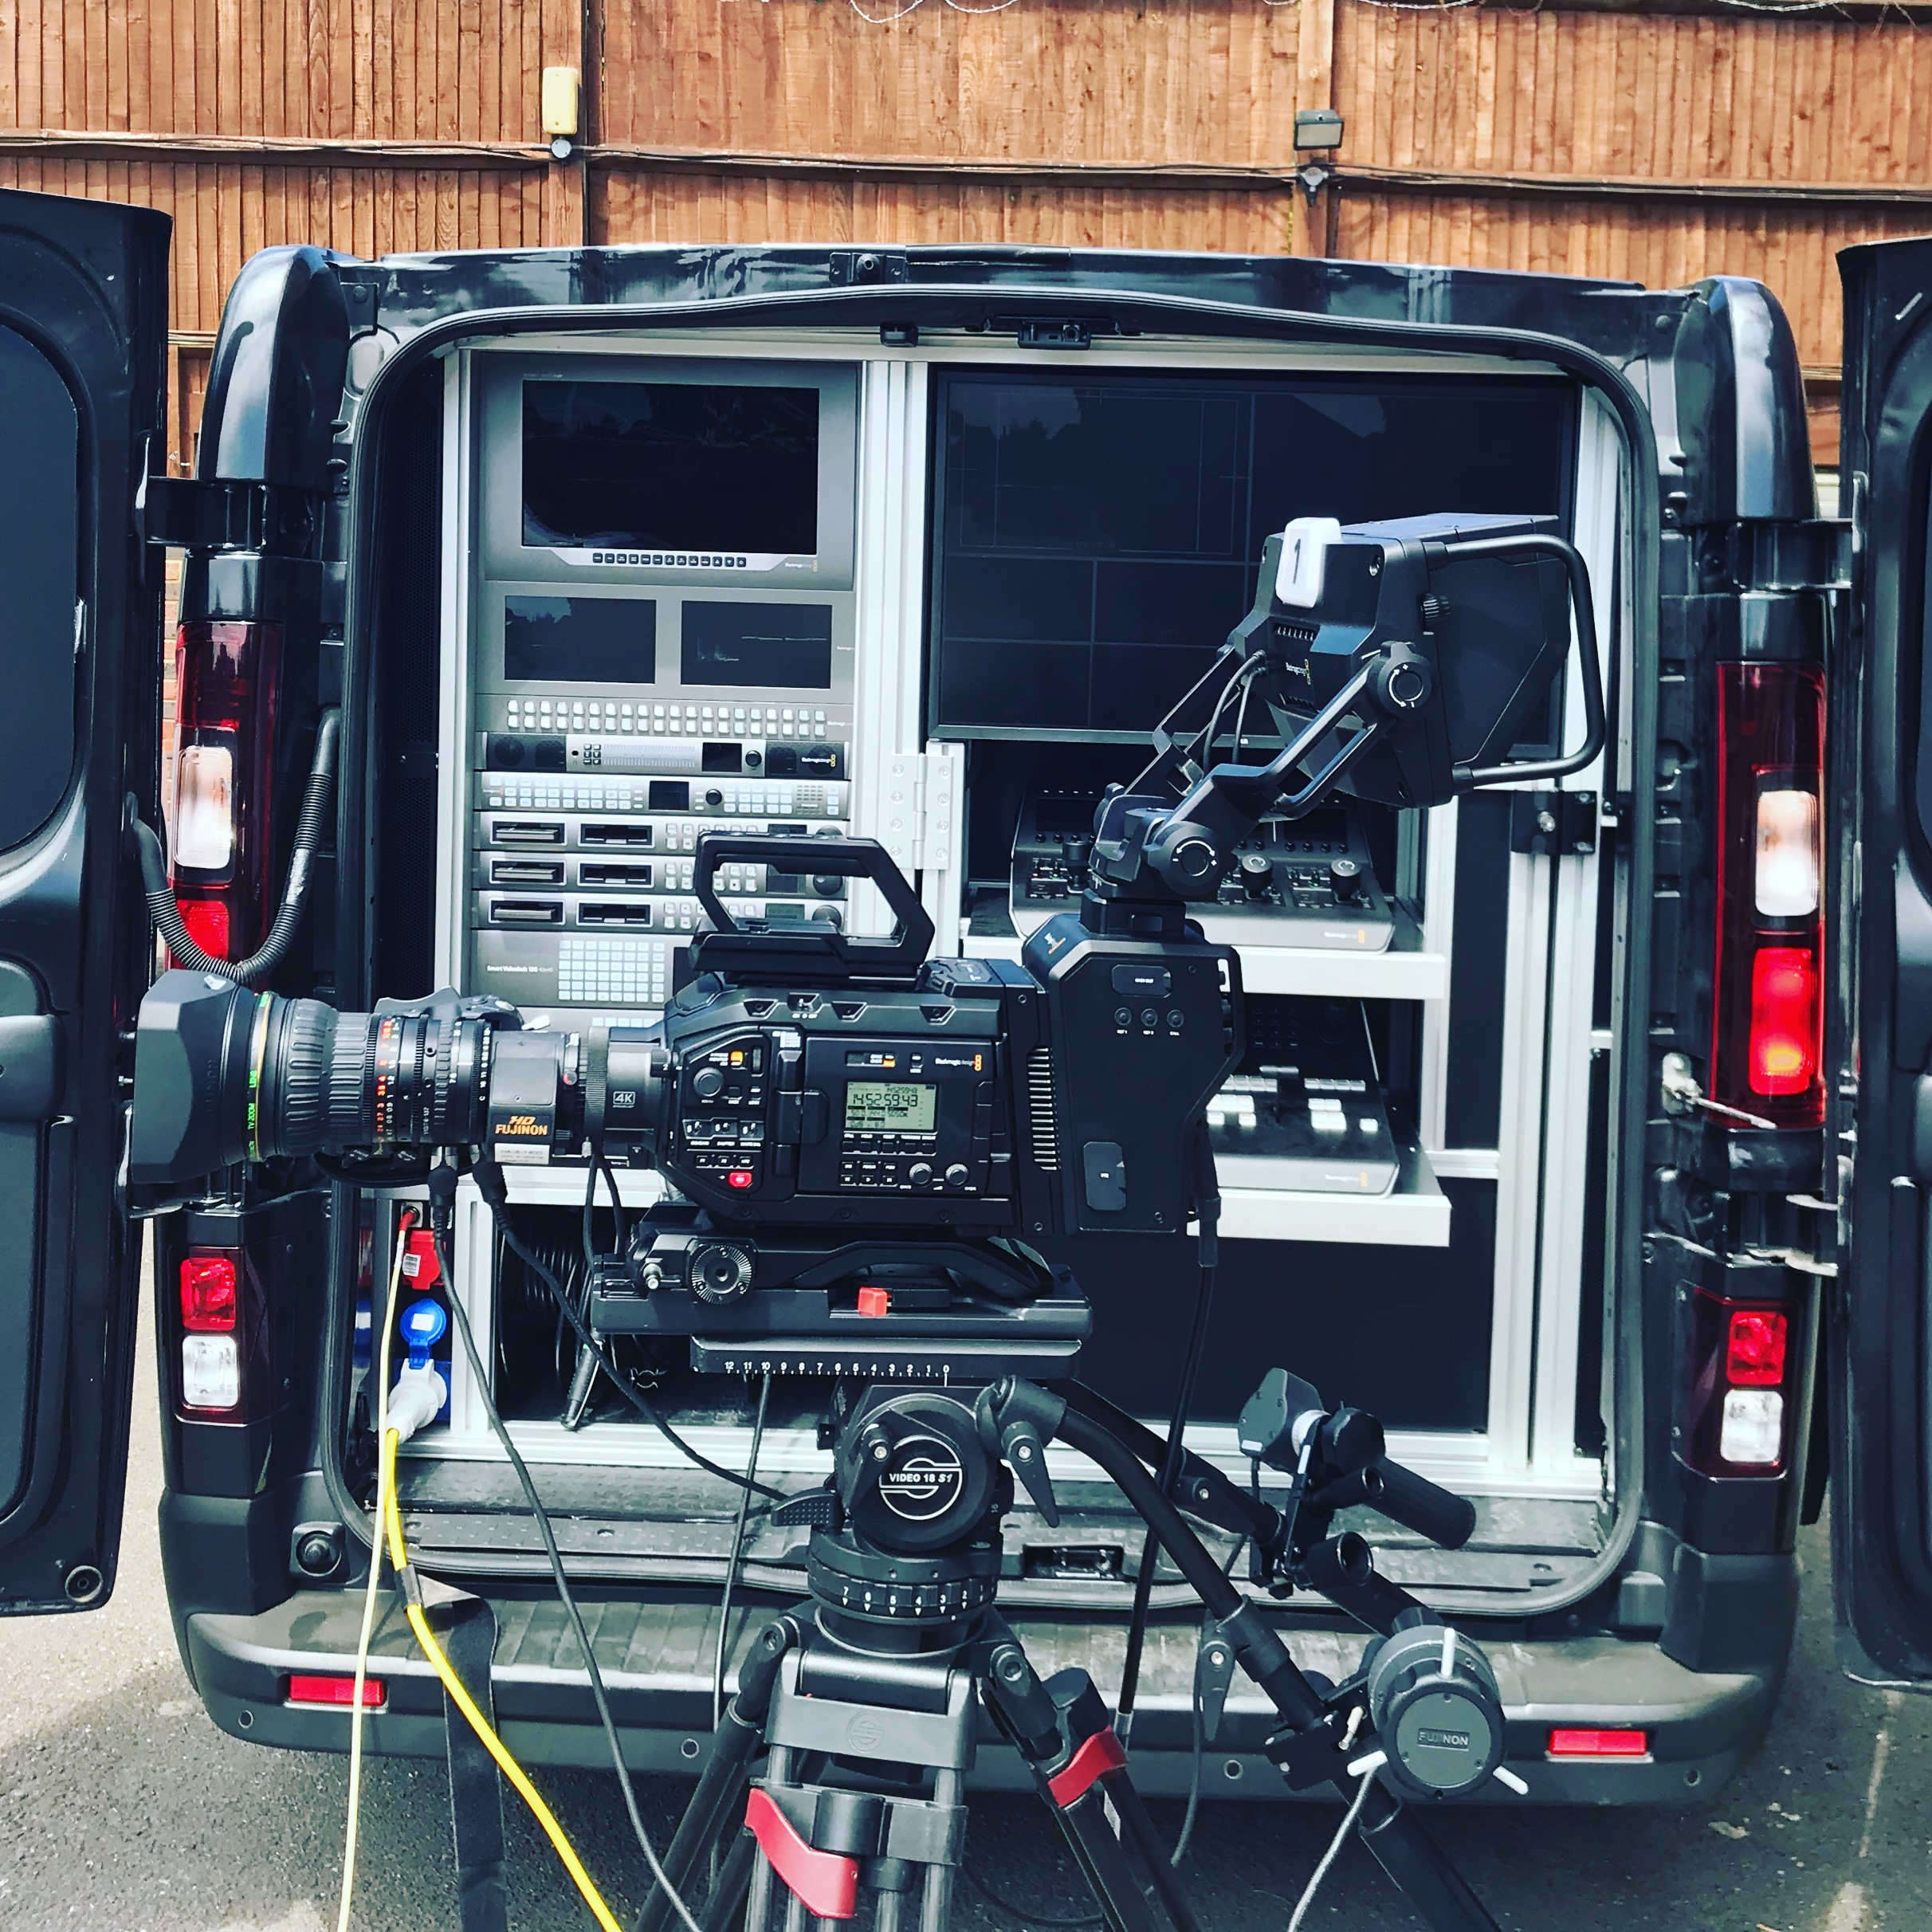 Blackmagic Design's Production truck visits Finepoint